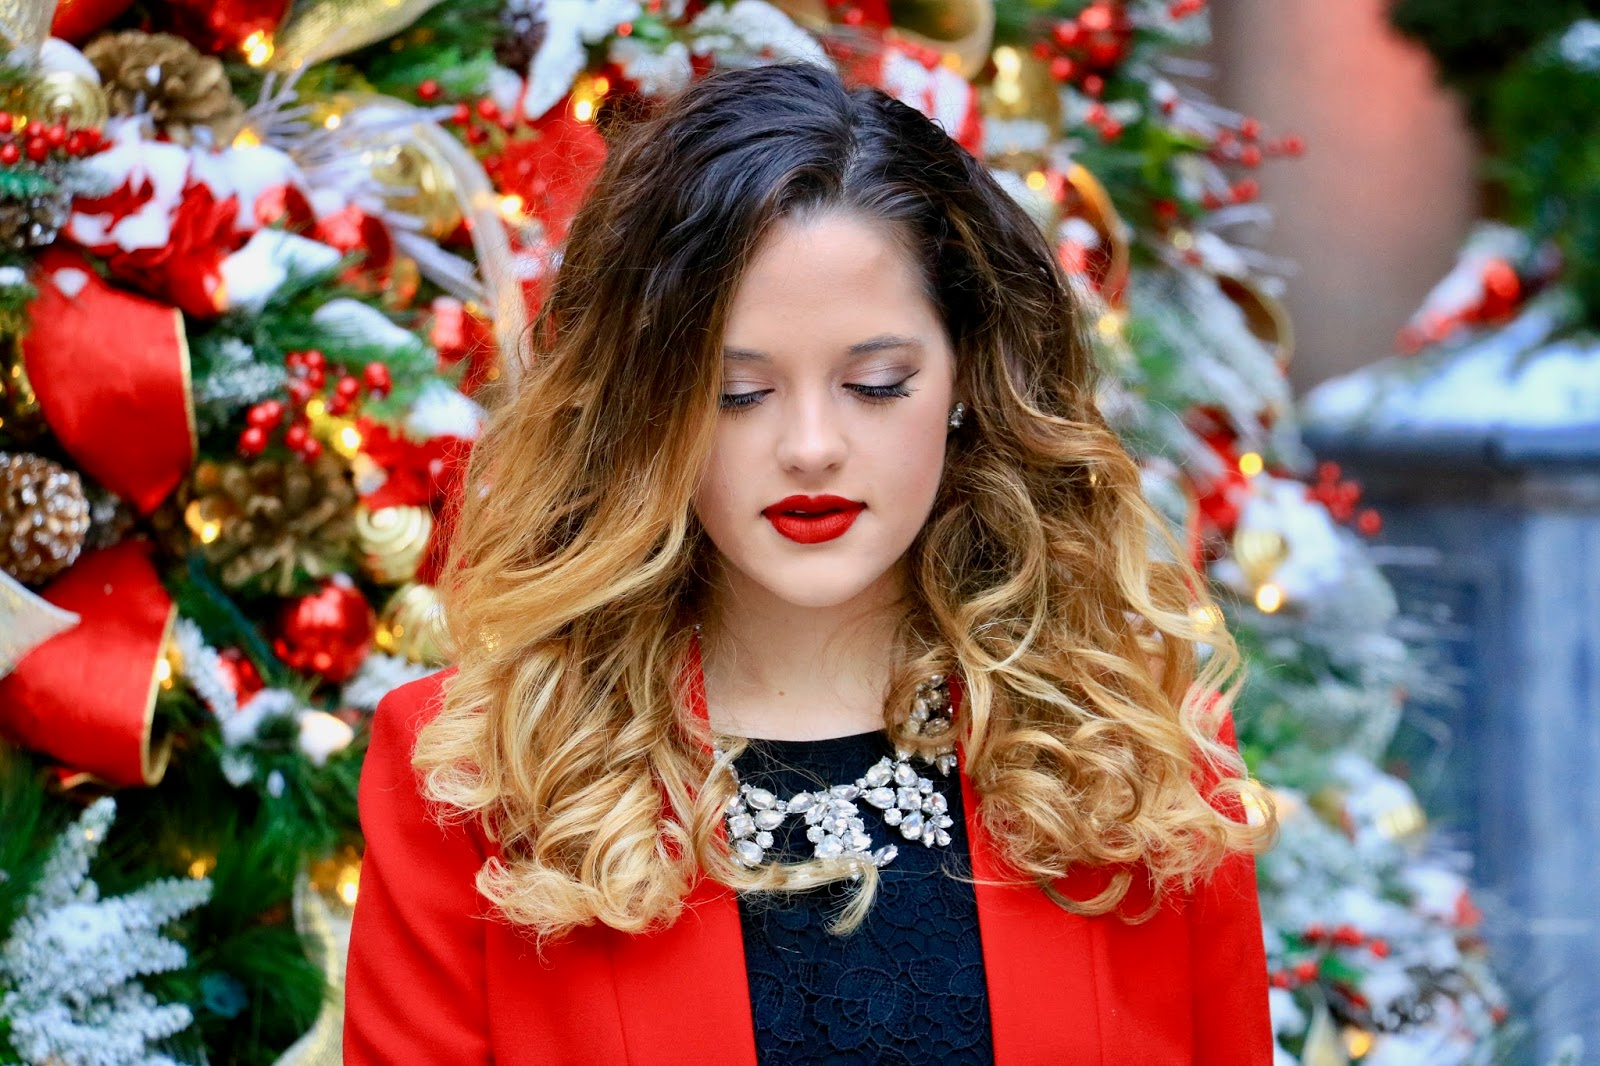 Nyc beauty blogger Kathleen Harper wearing holiday makeup with a red lip